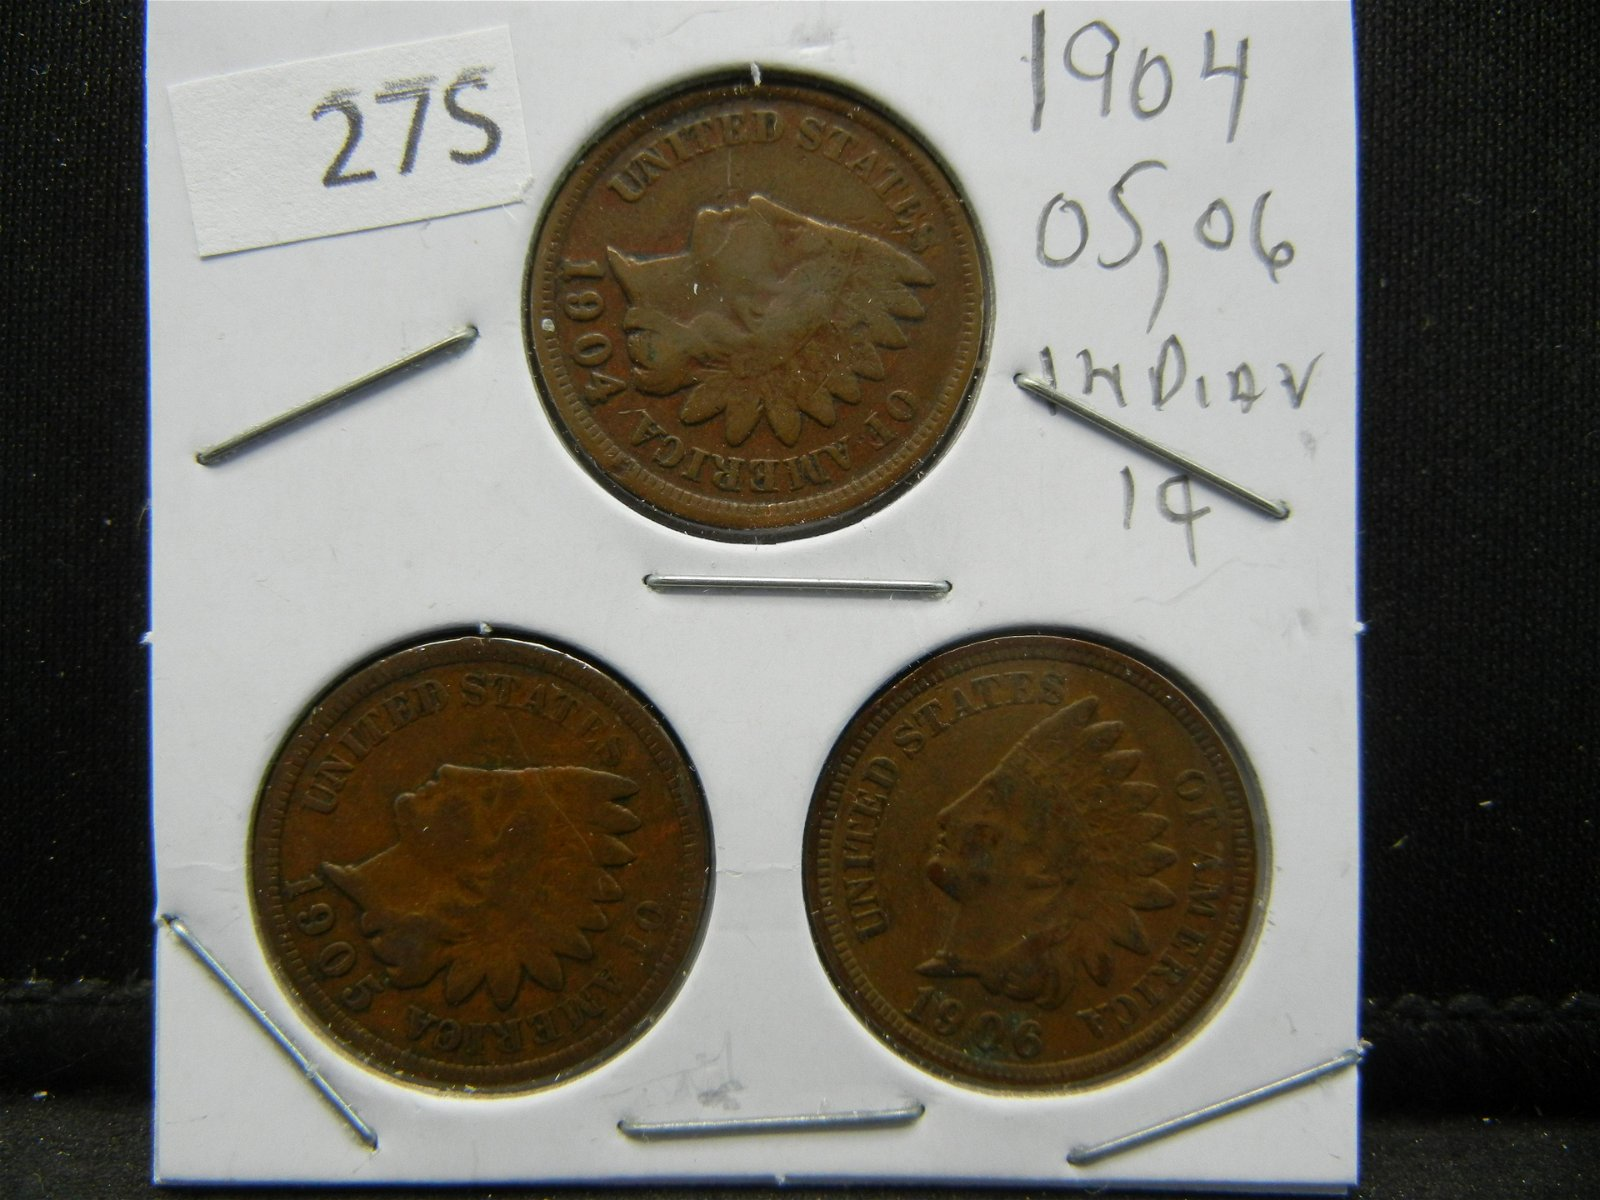 1904, 05, 06 Indian Head Cents